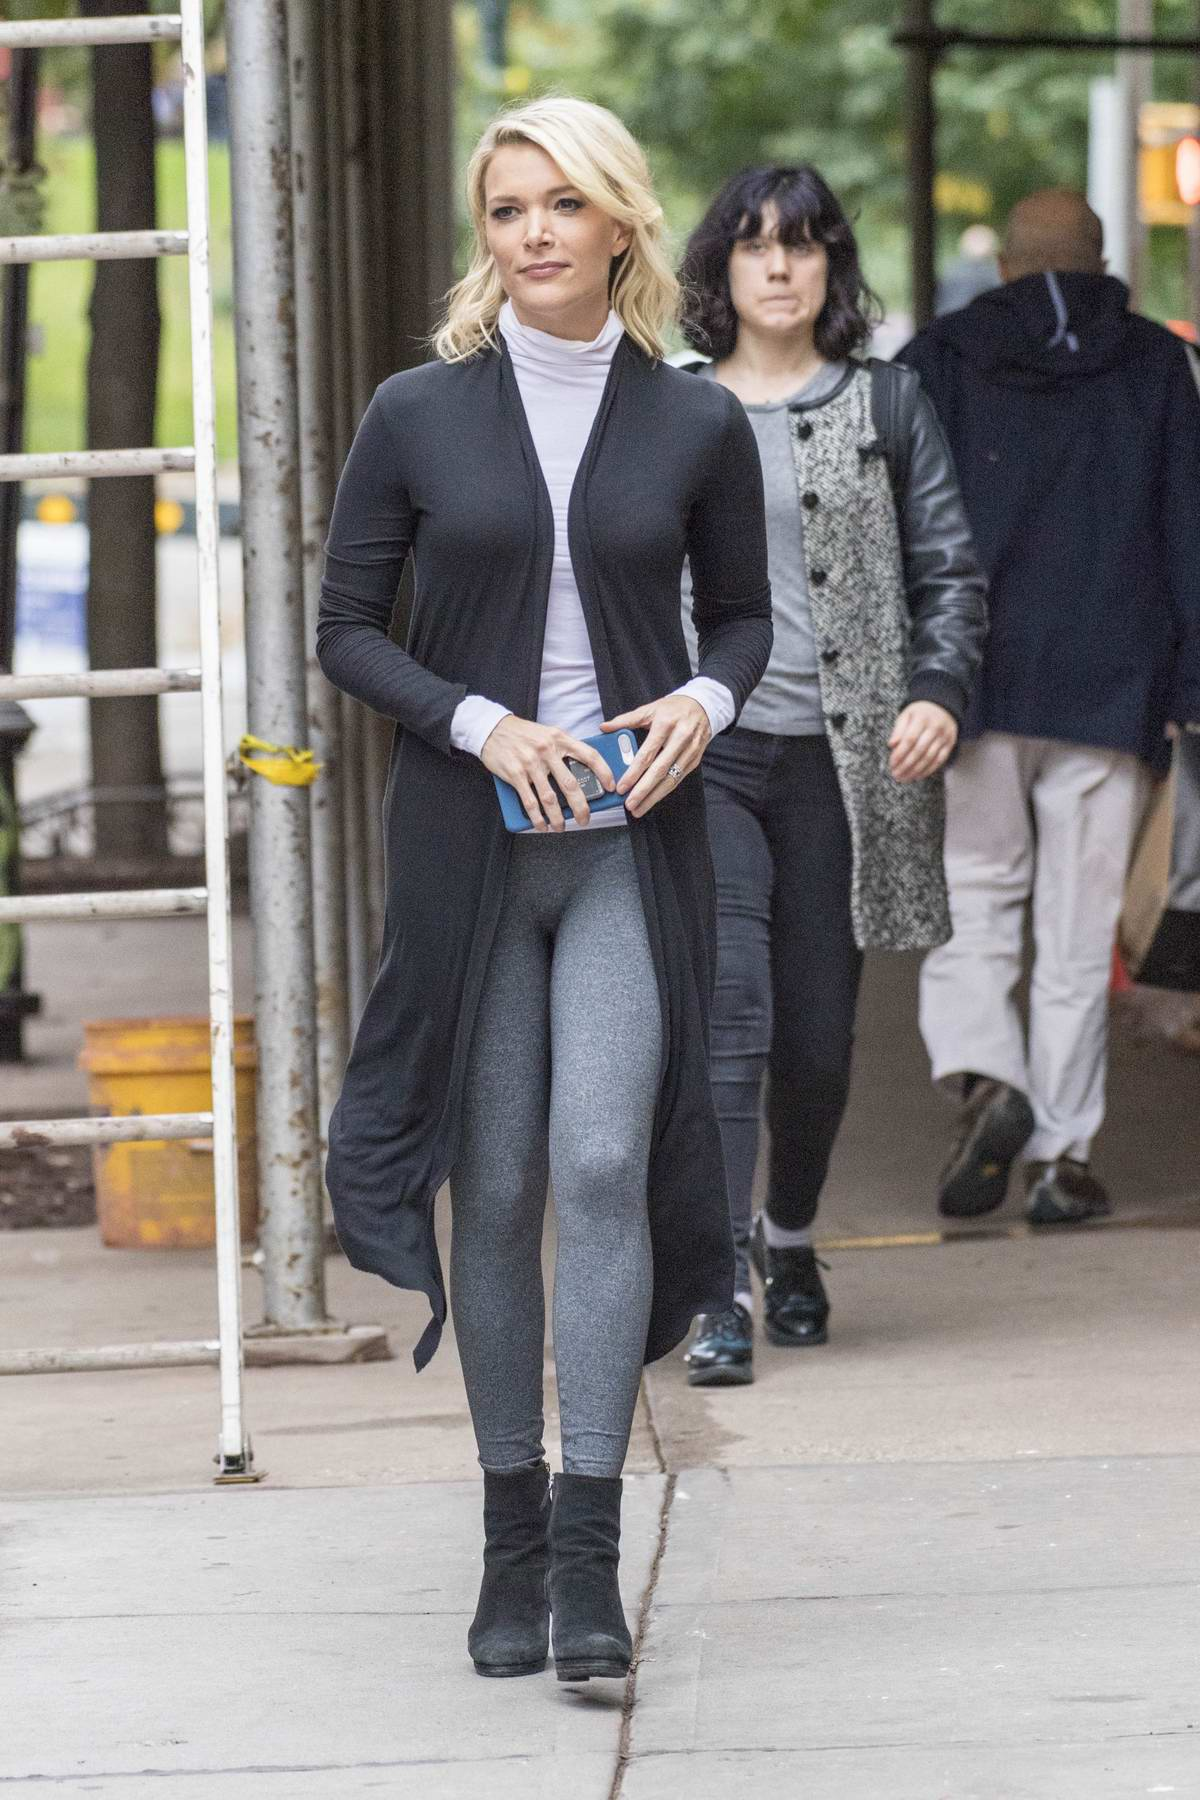 Megyn Kelly was seen leaving NBC studios after a TV appearance in New York City